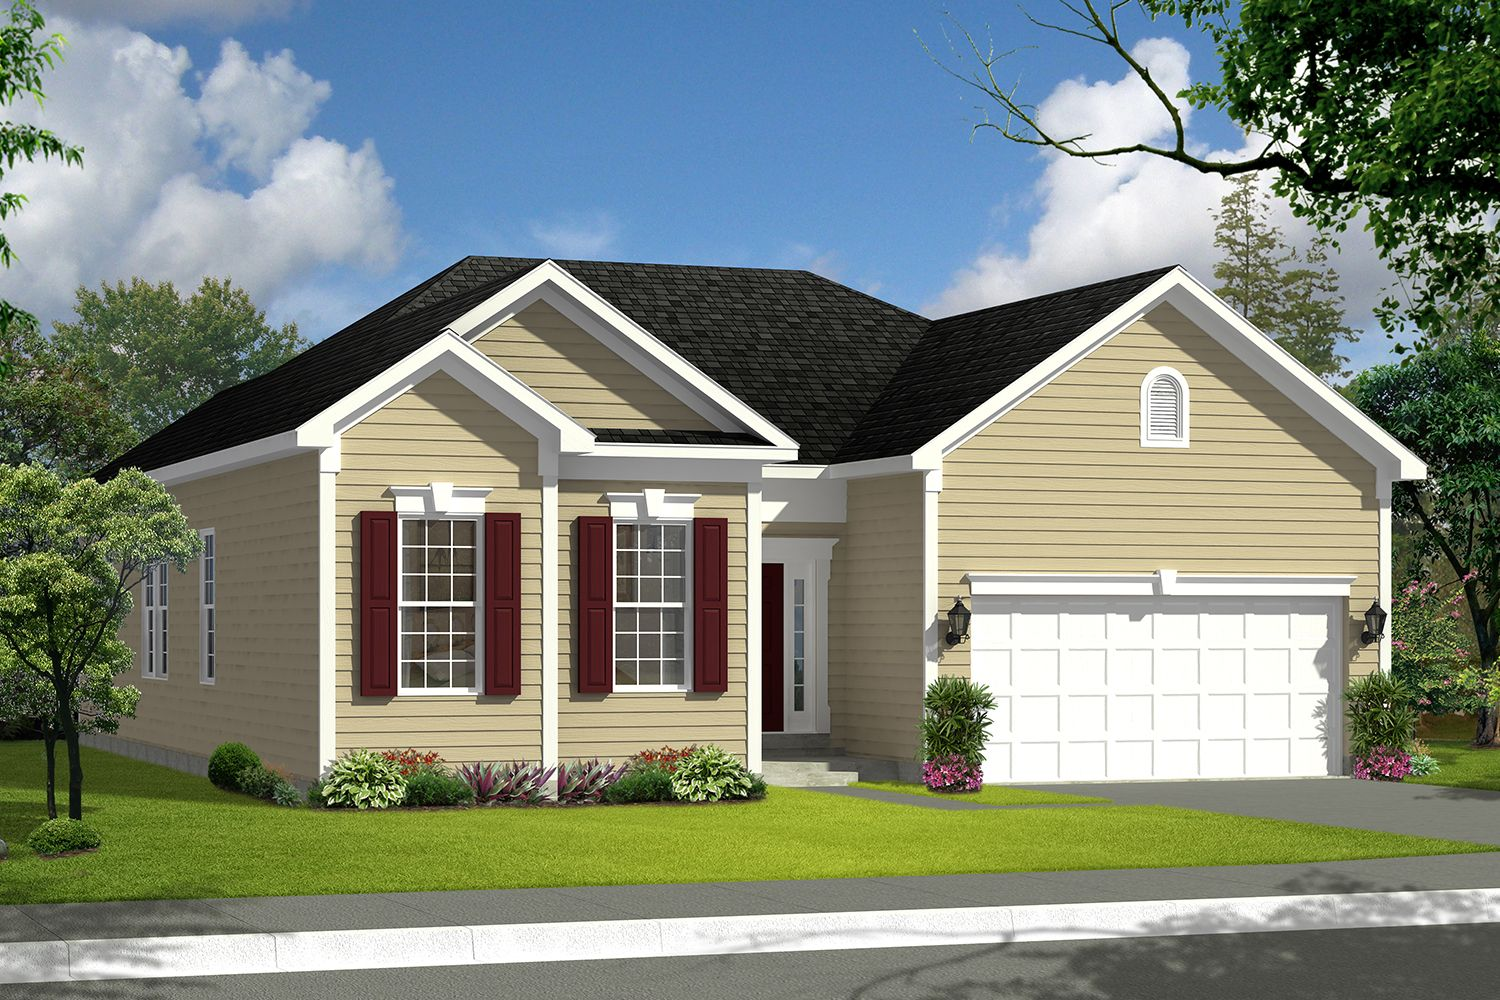 Single Family for Sale at The Meadows - Juniper Ii 219 Meadow Ponds Lane Maidsville, West Virginia 26541 United States